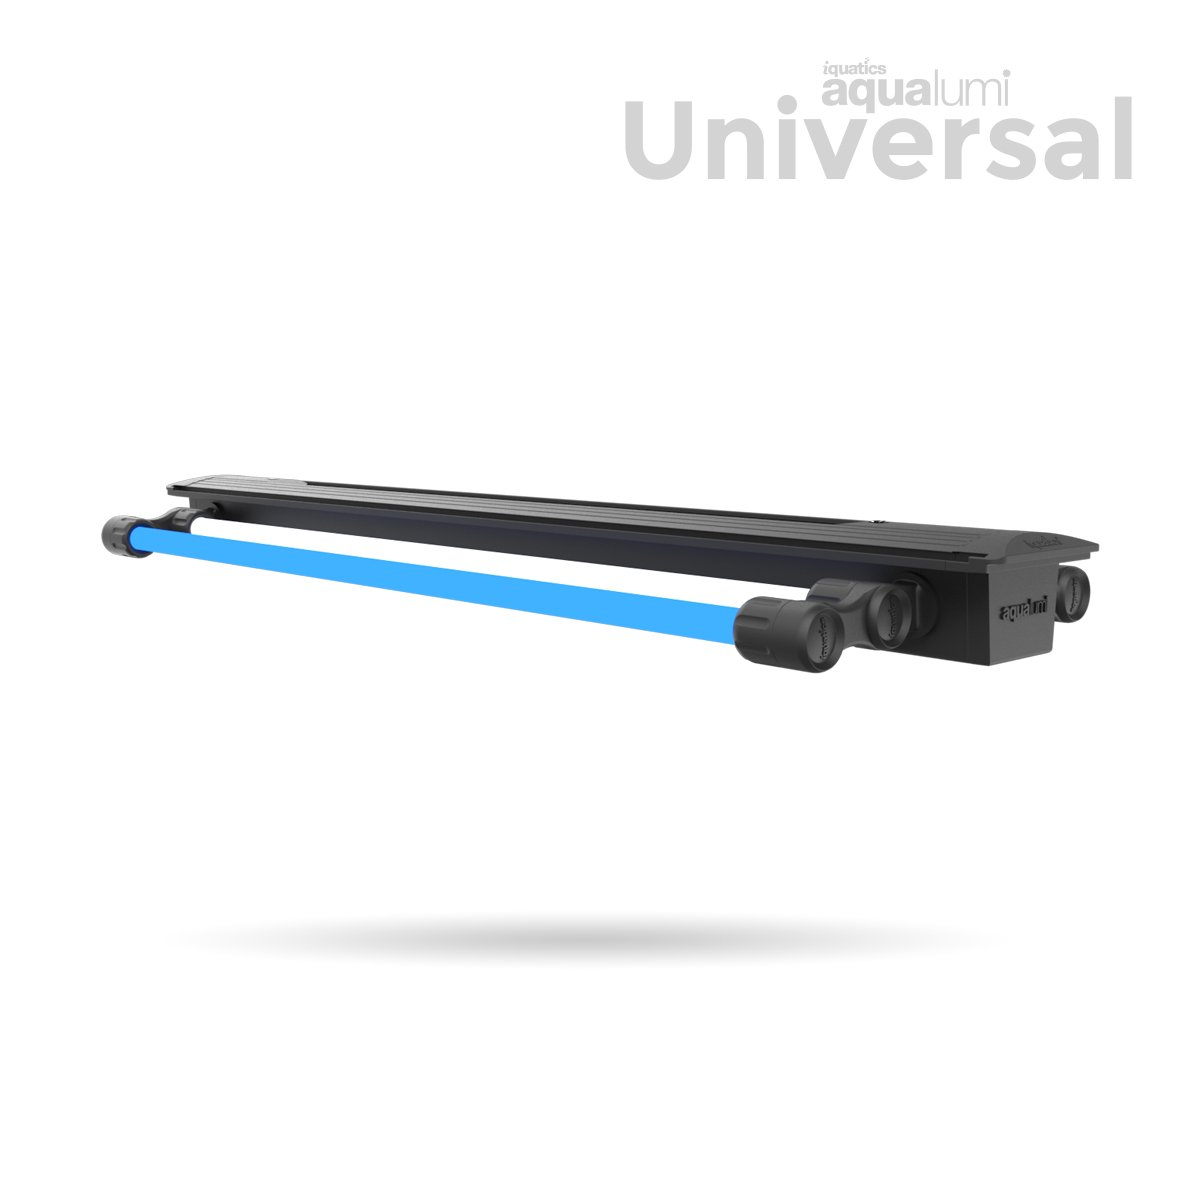 80cm 4 Tube T5 Light Unit - Juwel High Lite Compatible, Rio 125, Panorama 80, Lid, Flaps